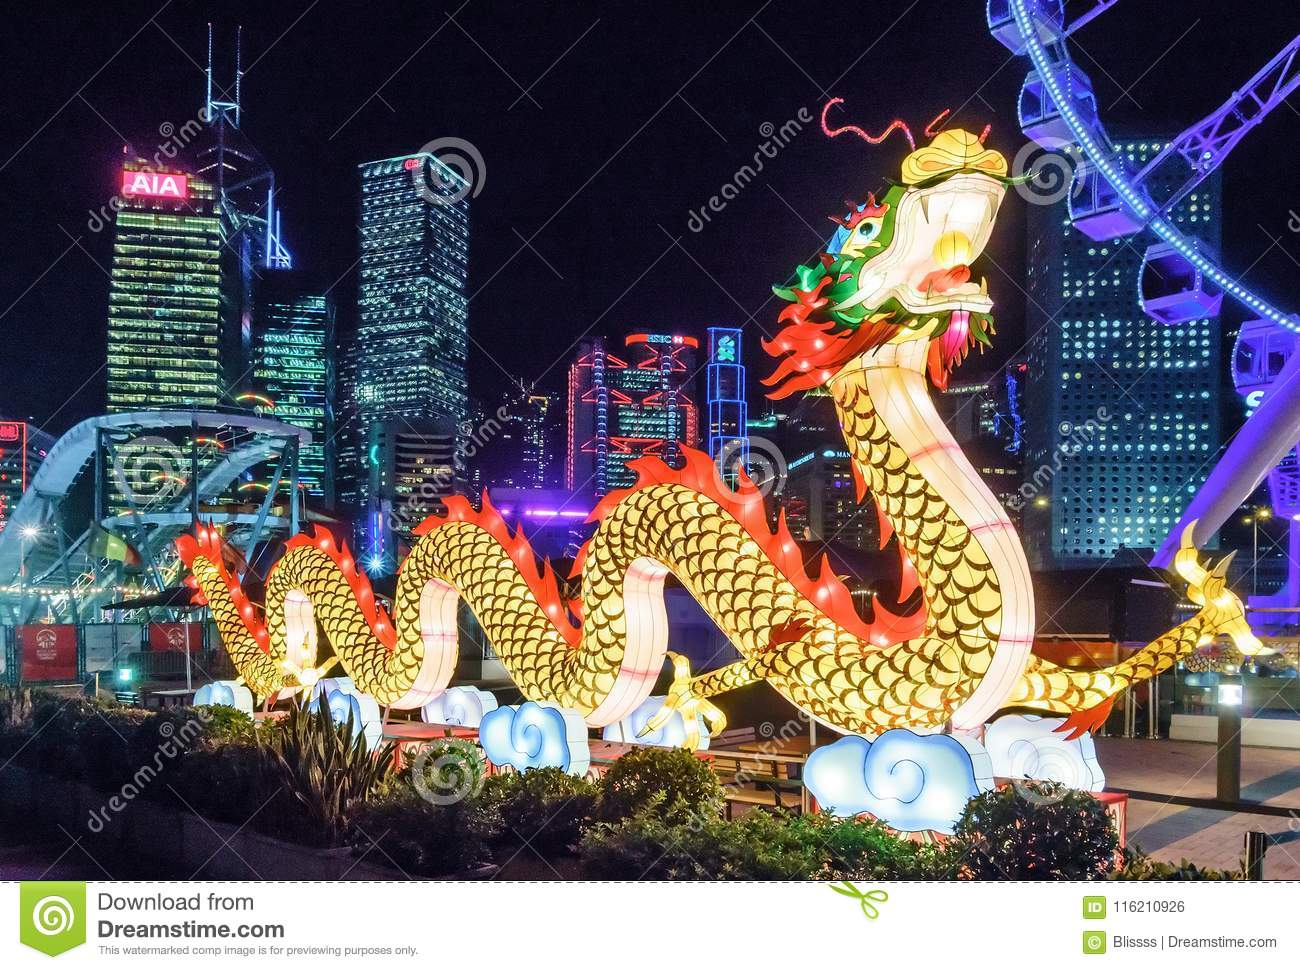 Big Illuminated Chinese Dragon Festive Decoration At AIA Great